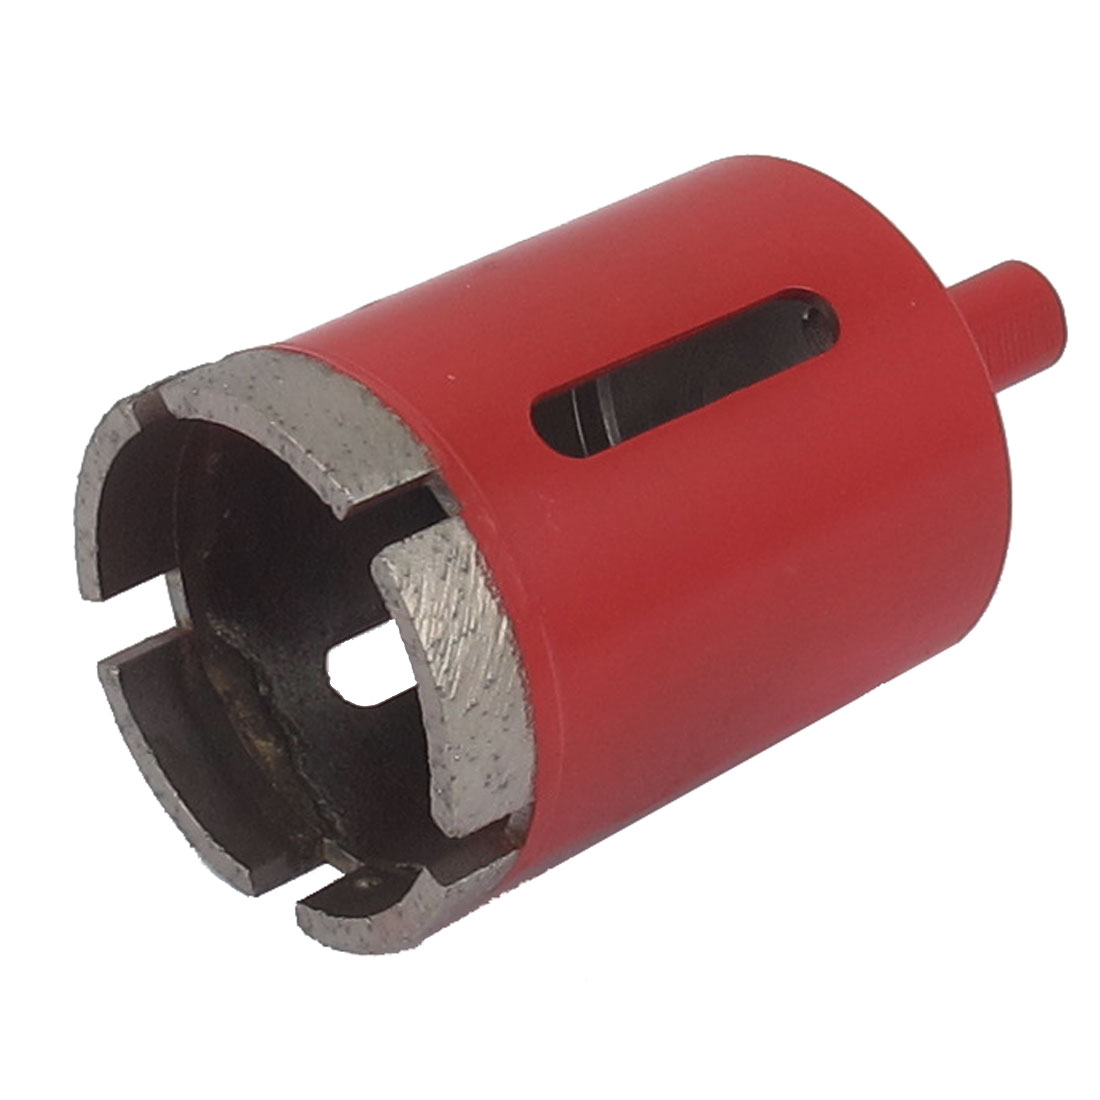 Red Housing 10mm Shank 45mm Dia Granite Marble Wet Dry Diamond Hole Saw Cutter